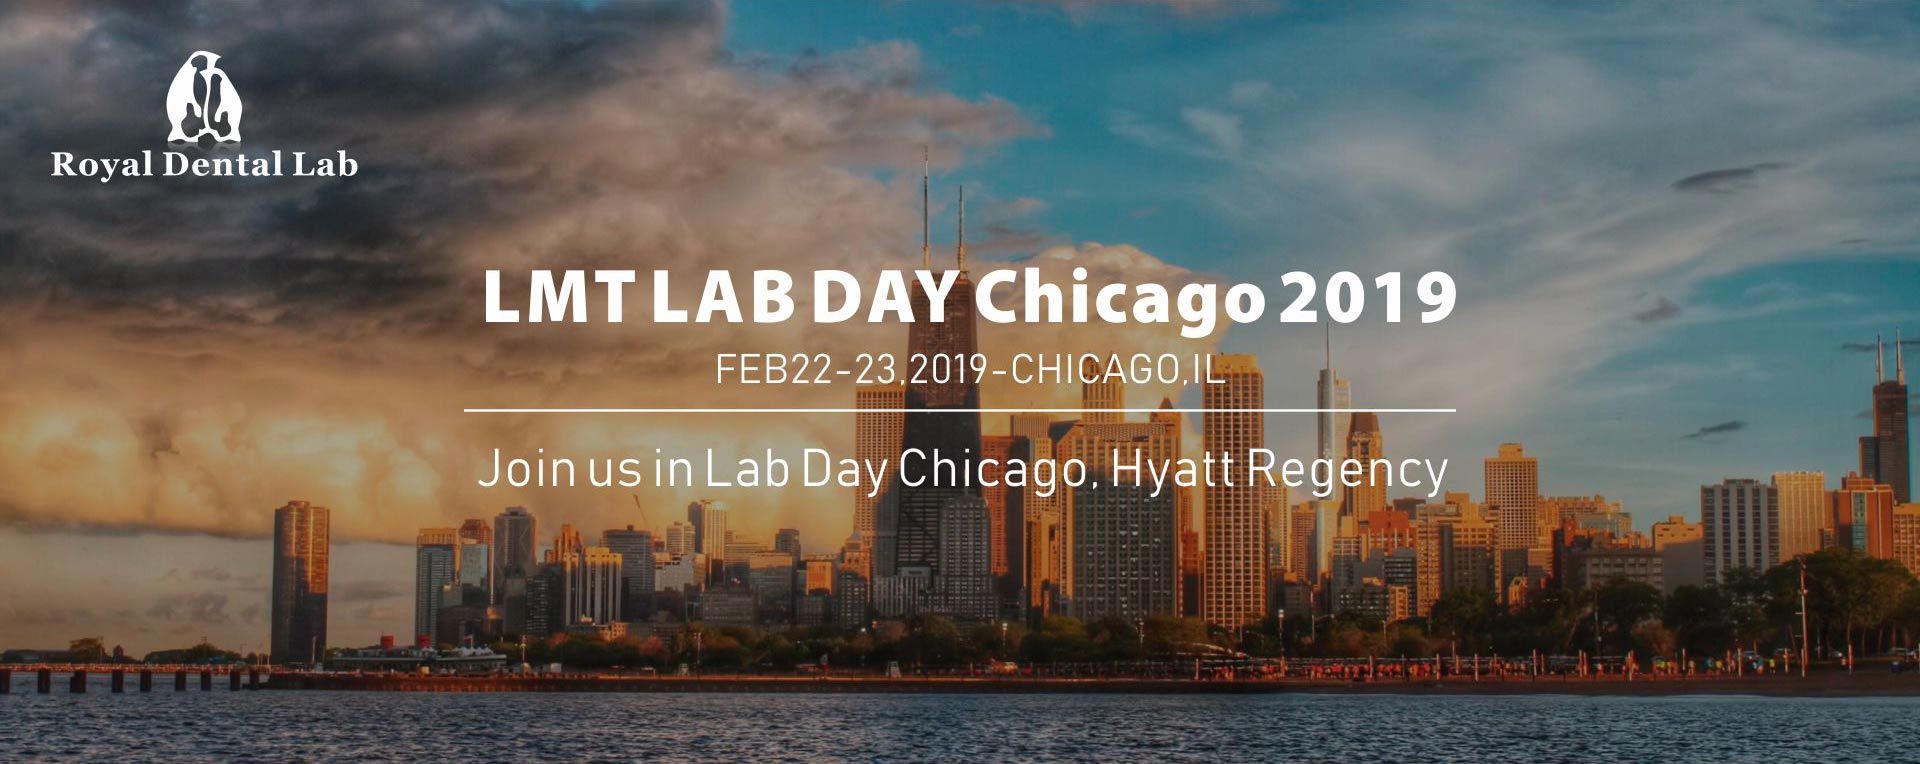 LMT LAB DAY Chicago 2019